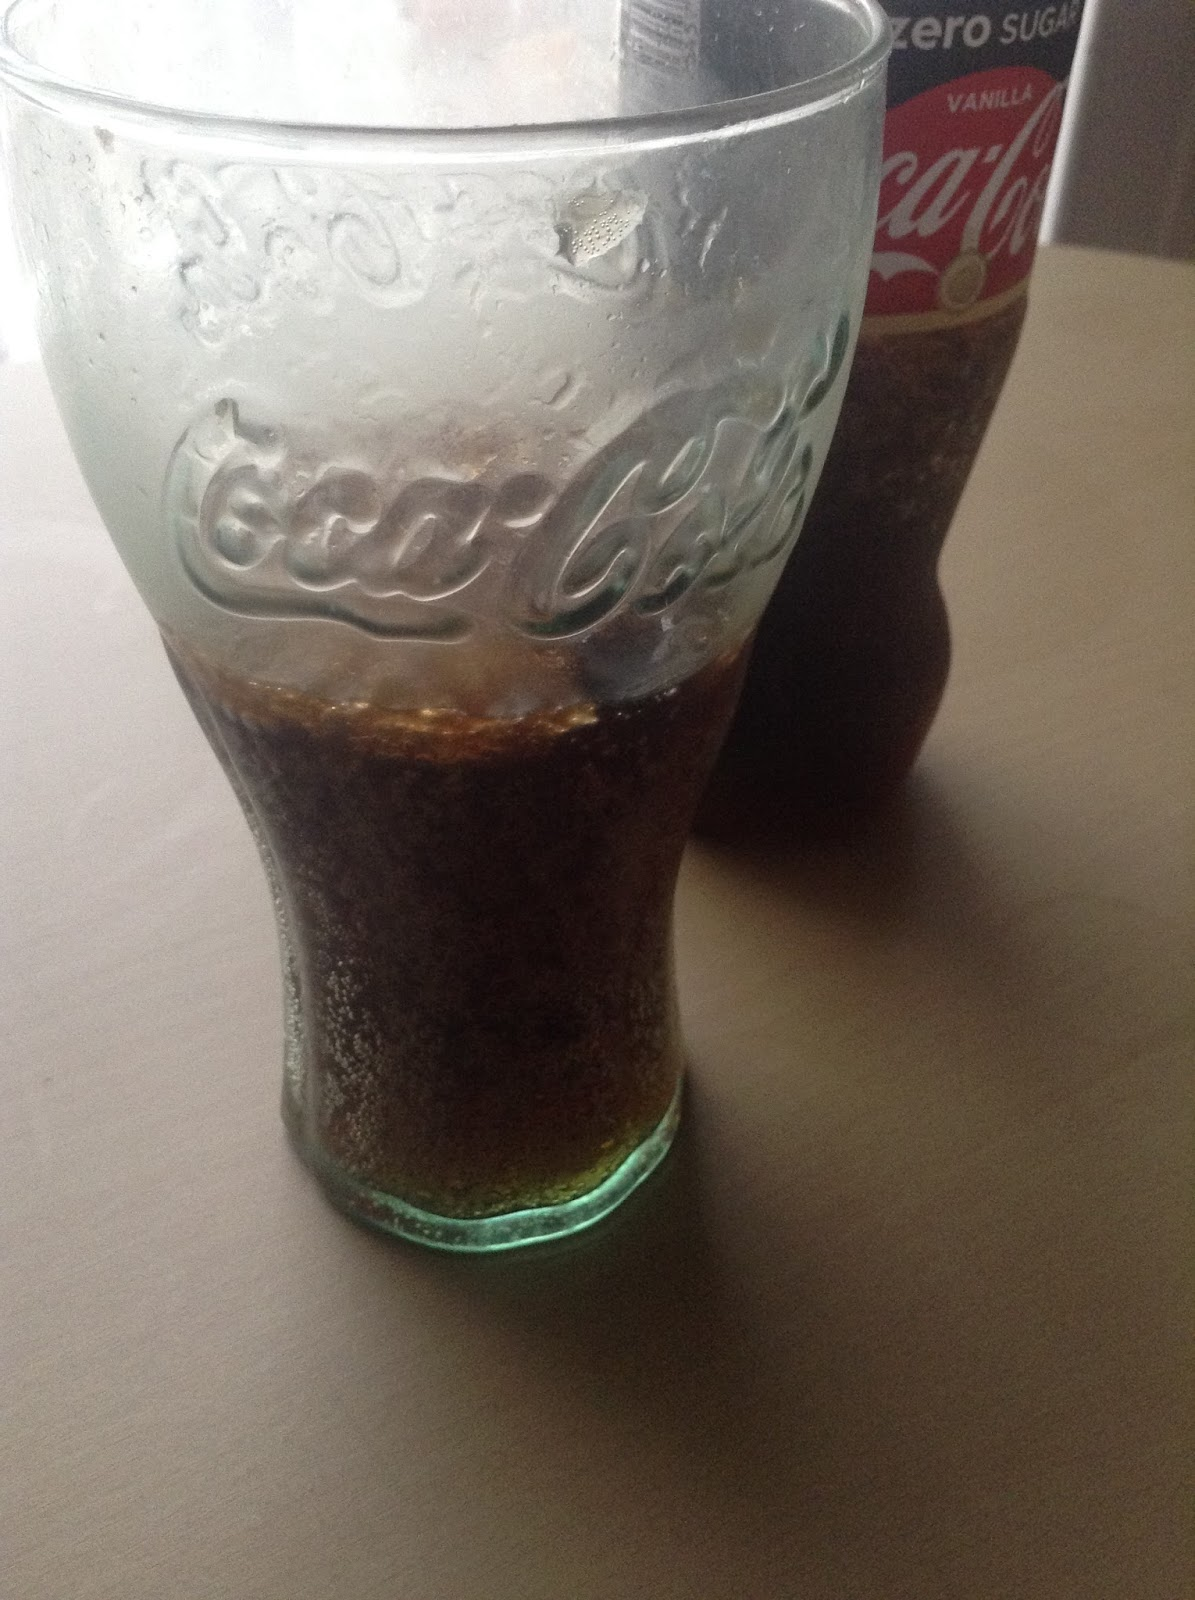 coca cola review Coca-cola atlanta, georgia headquartered the coca-cola co's stock ended yesterday's session 002% lower at $4511 with a total trading volume of 996 million shares the company's shares have .